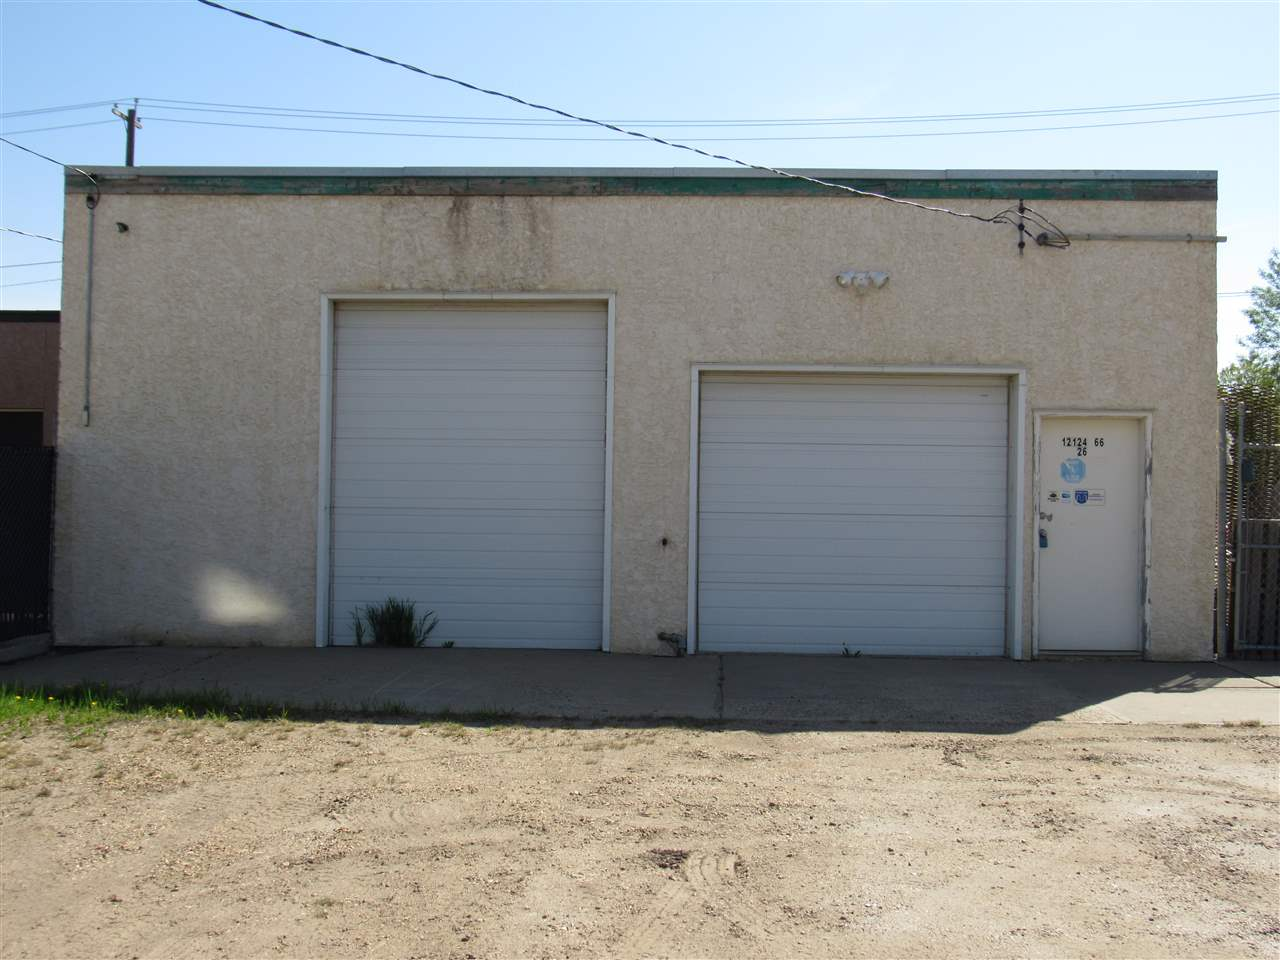 Street front 66 |Street location and just  1 minute to Yellowhead freeway.  Retail, shop and office. Parking at front and rear.  GROSS LEASE  Rent is $3,100.00 per month.  Tenant pays utilities and all tenant license and business tax etc....... Additional fenced yard could be rented also ( price to be negotiated) .   Present tenant is an Air-condition and plumbing Company there for 10 years.